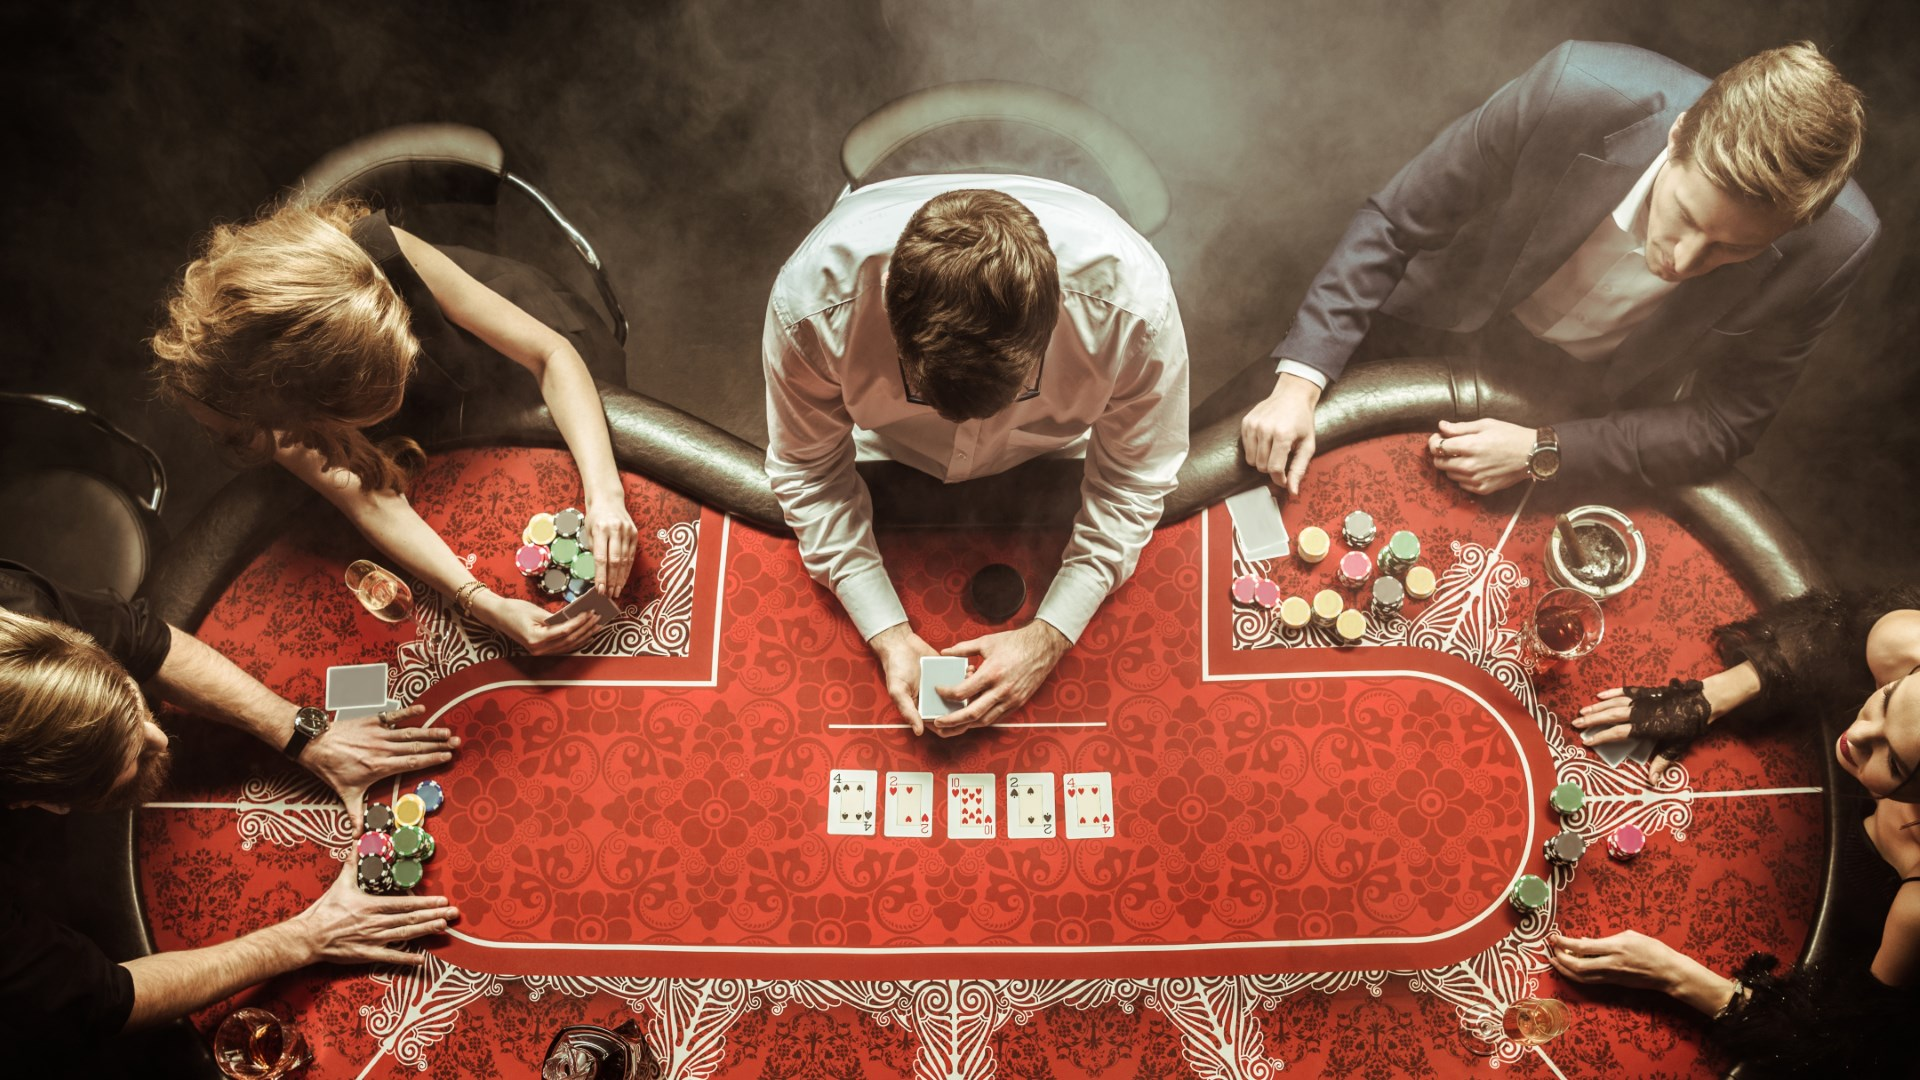 What are the best ways to win poker online: Important tips for online poker?